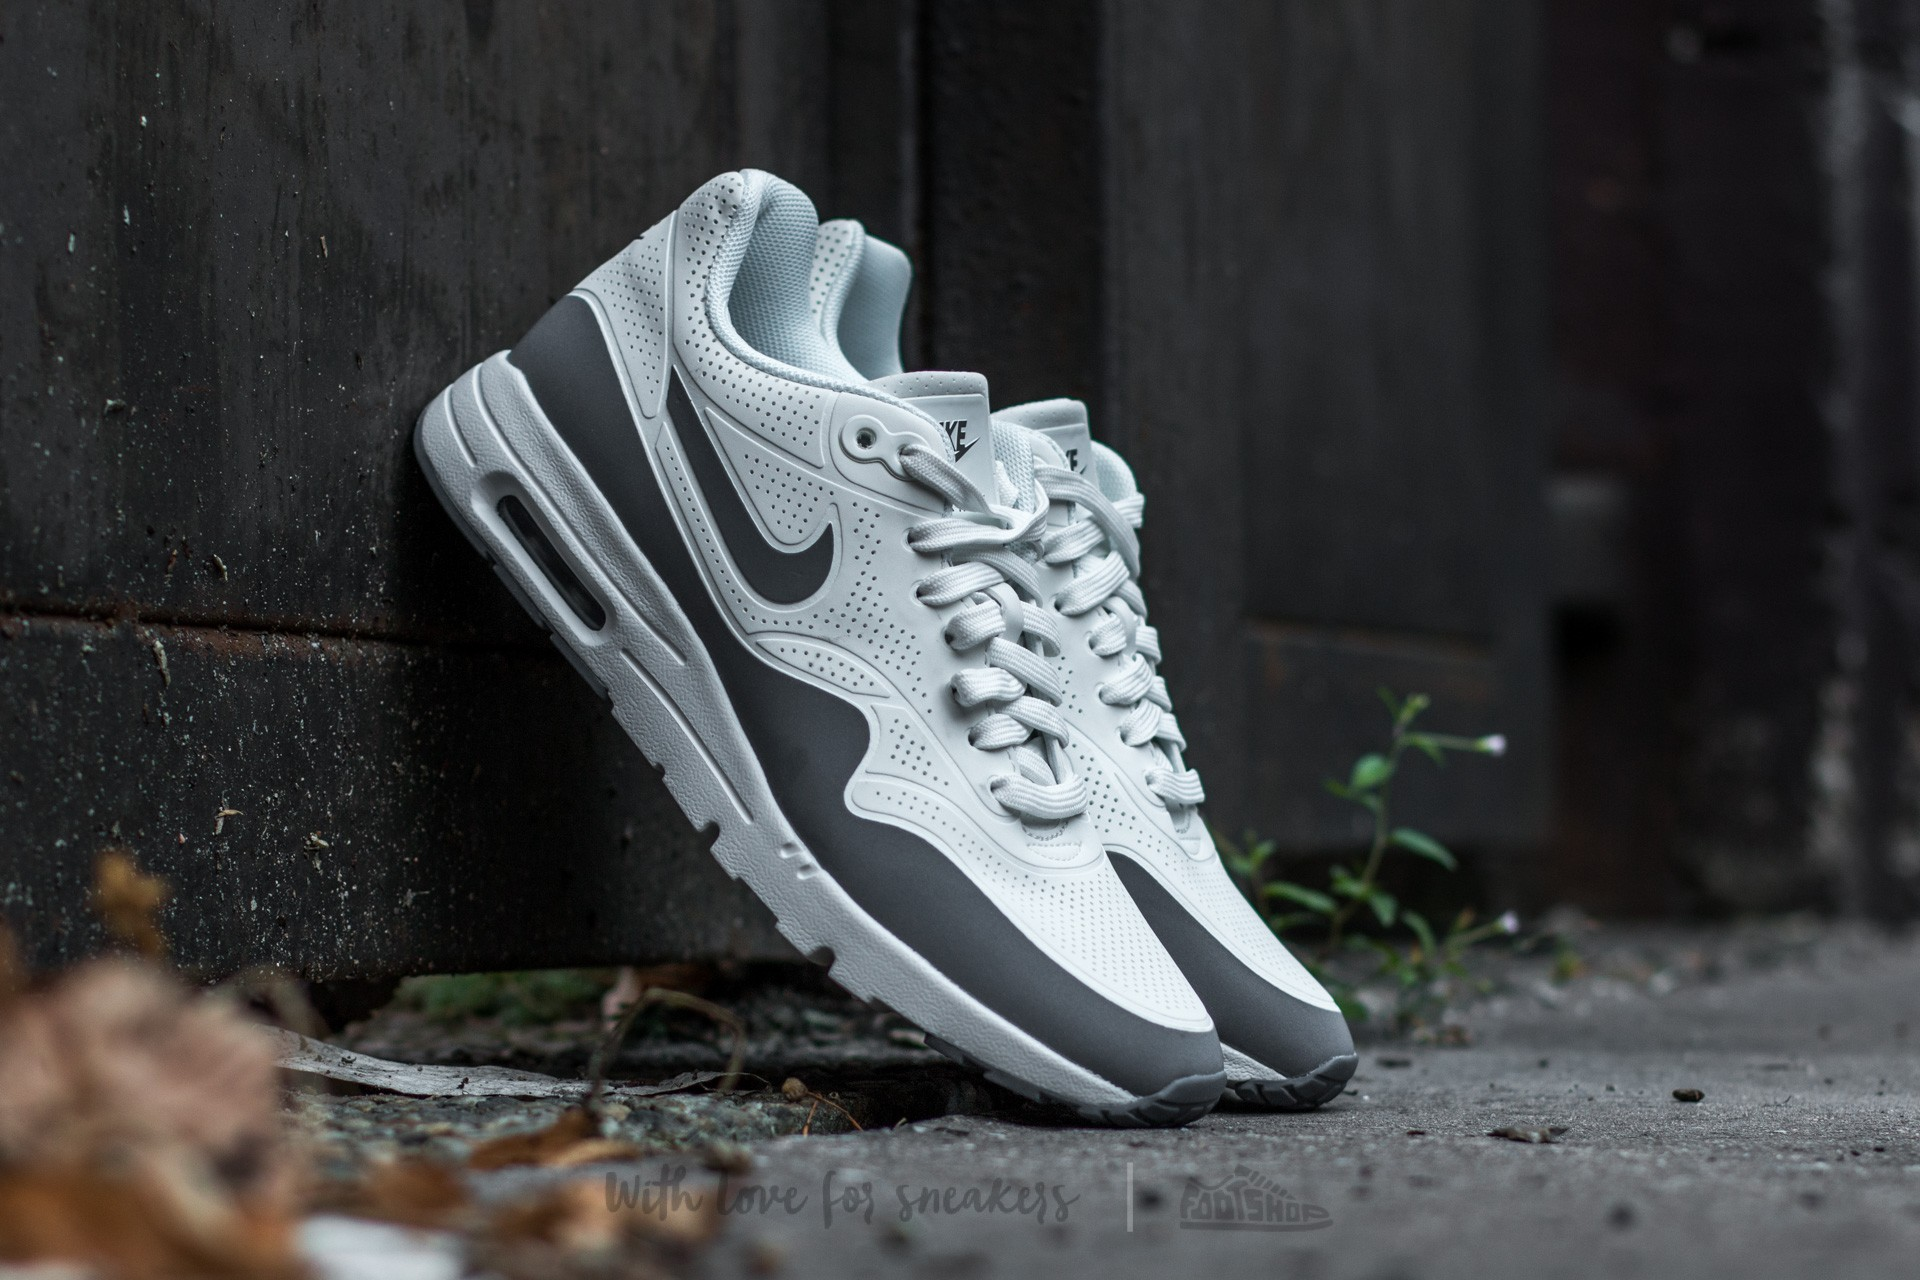 Nike Wmns Air Max 1 Ultra Moire Summit White/ Cool Grey-Mettalic Silver-White